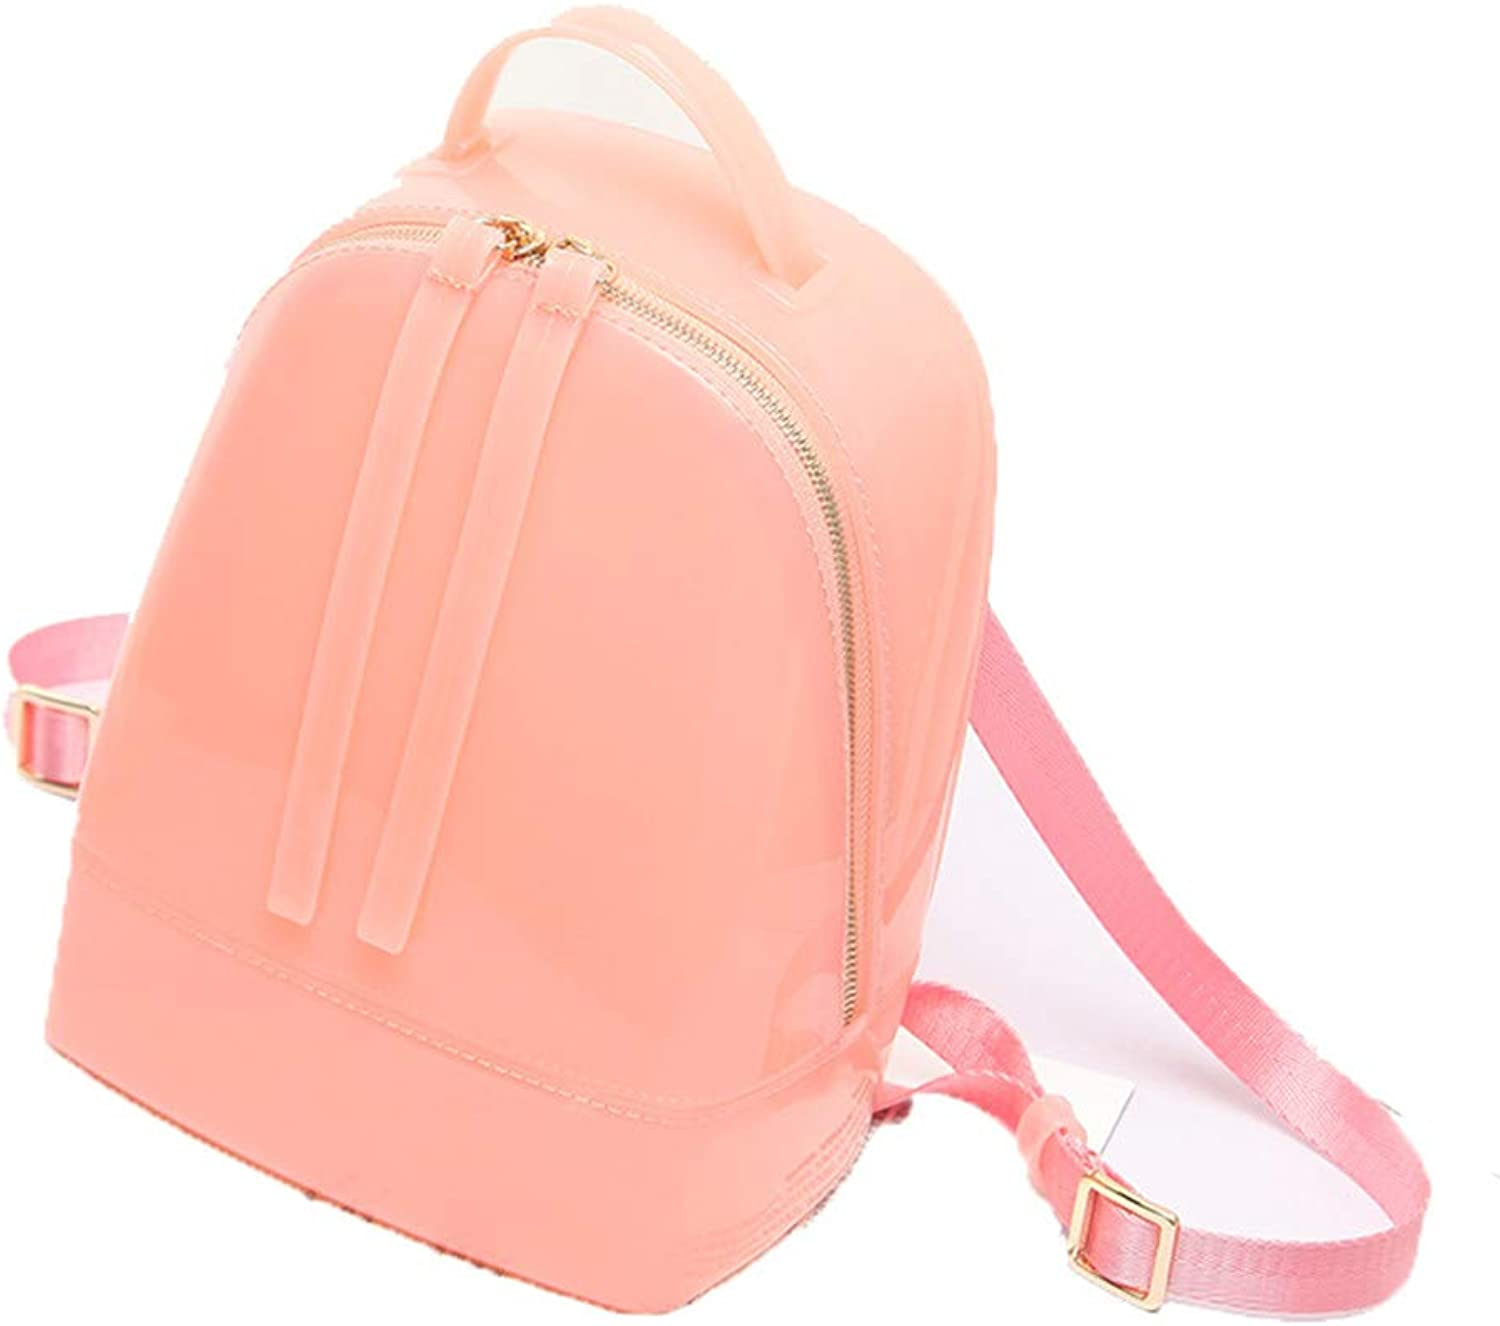 Silicone Backpack Female Travel Bags Girl School Bag Lady Waterproof Jelly Bag Pink Small